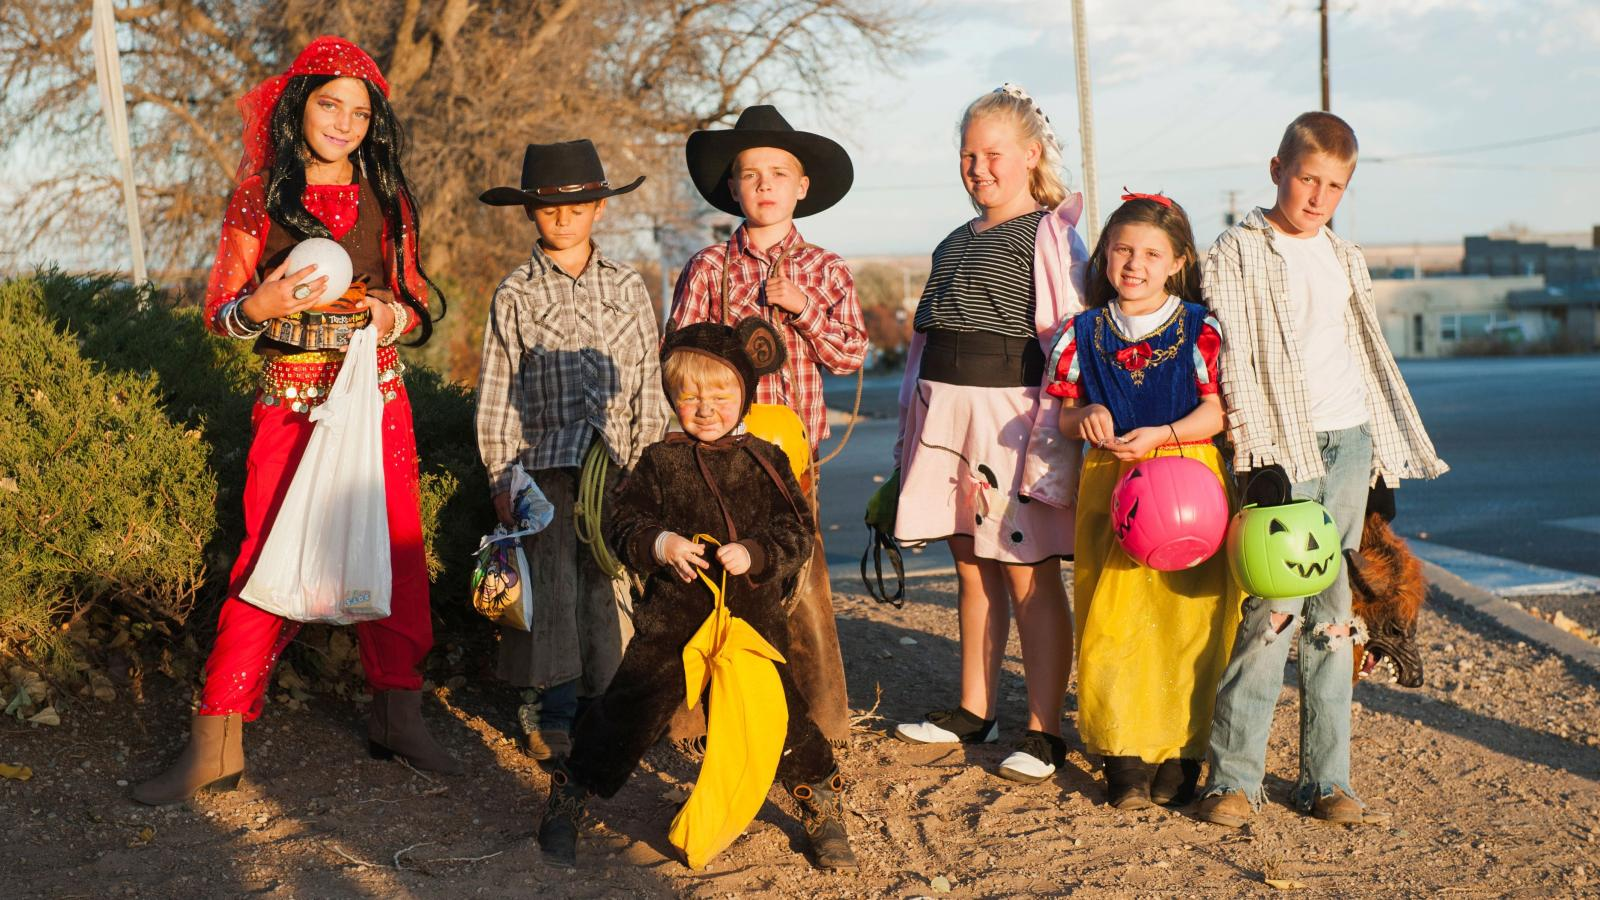 Halloween Trick Or Treat Hours Tucson 2020 This Halloween, some US towns will ban teens from trick or